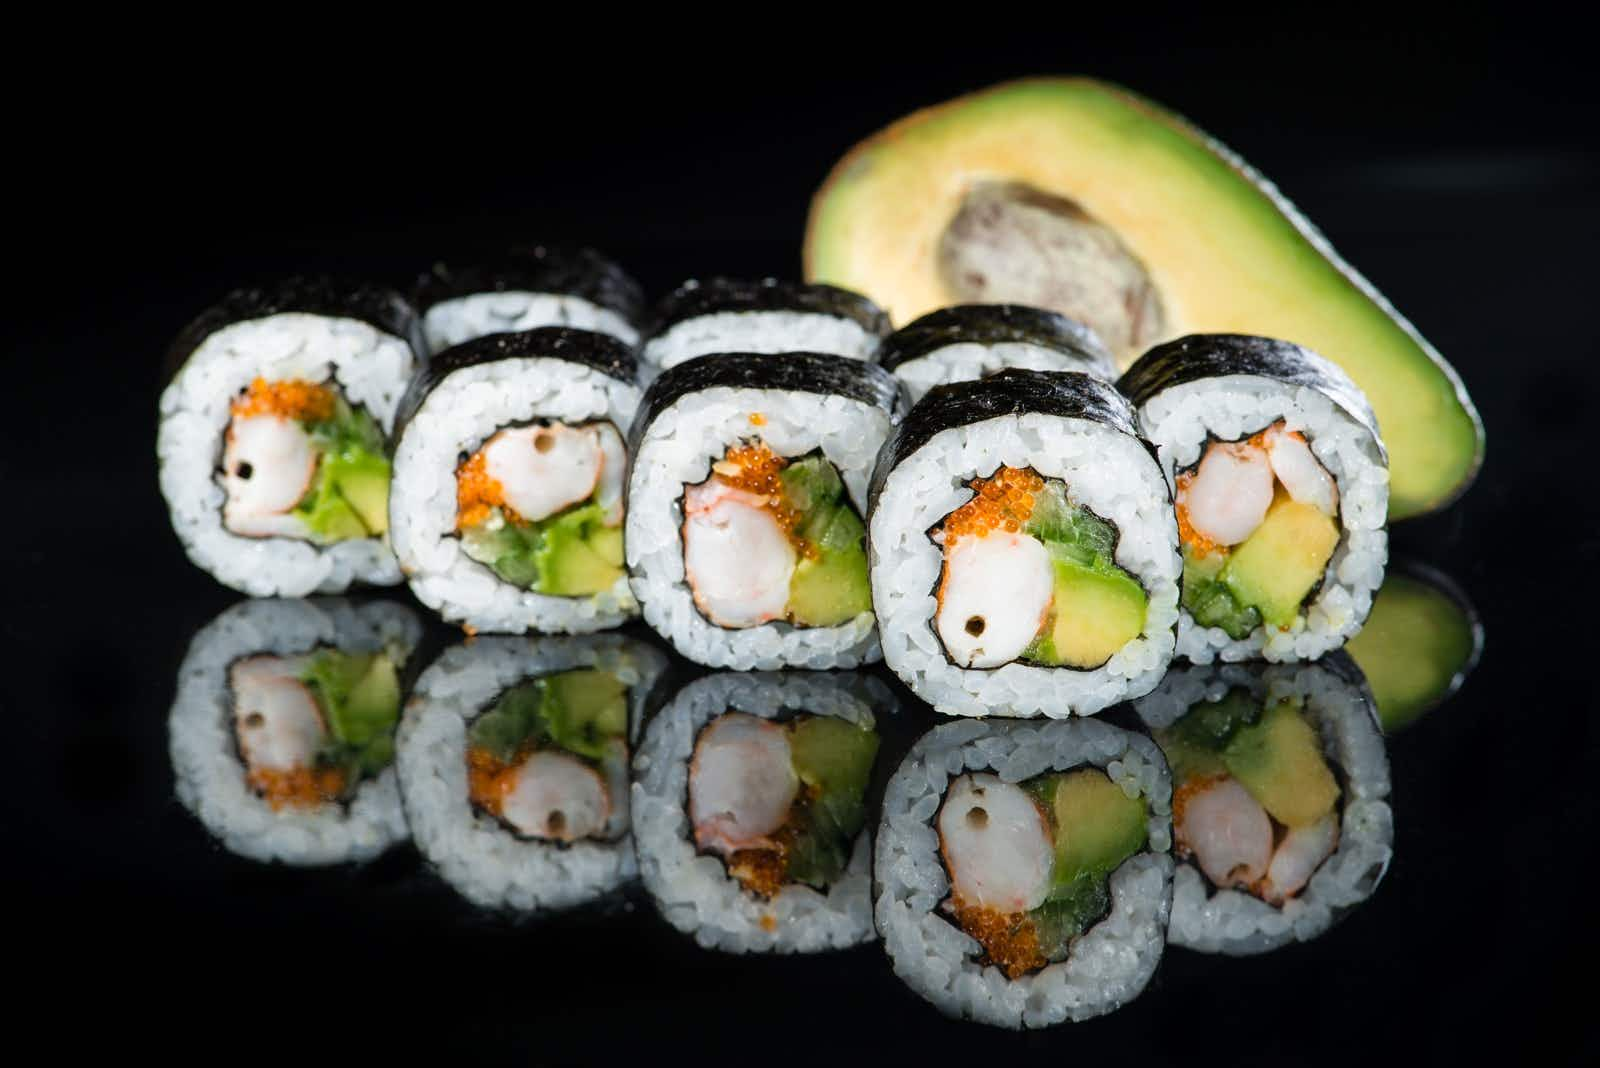 The California roll, a simple combo of avocado, crab, seaweed and rice, has become one of the world's most recognizable sushi rolls © smspsy / Shutterstock